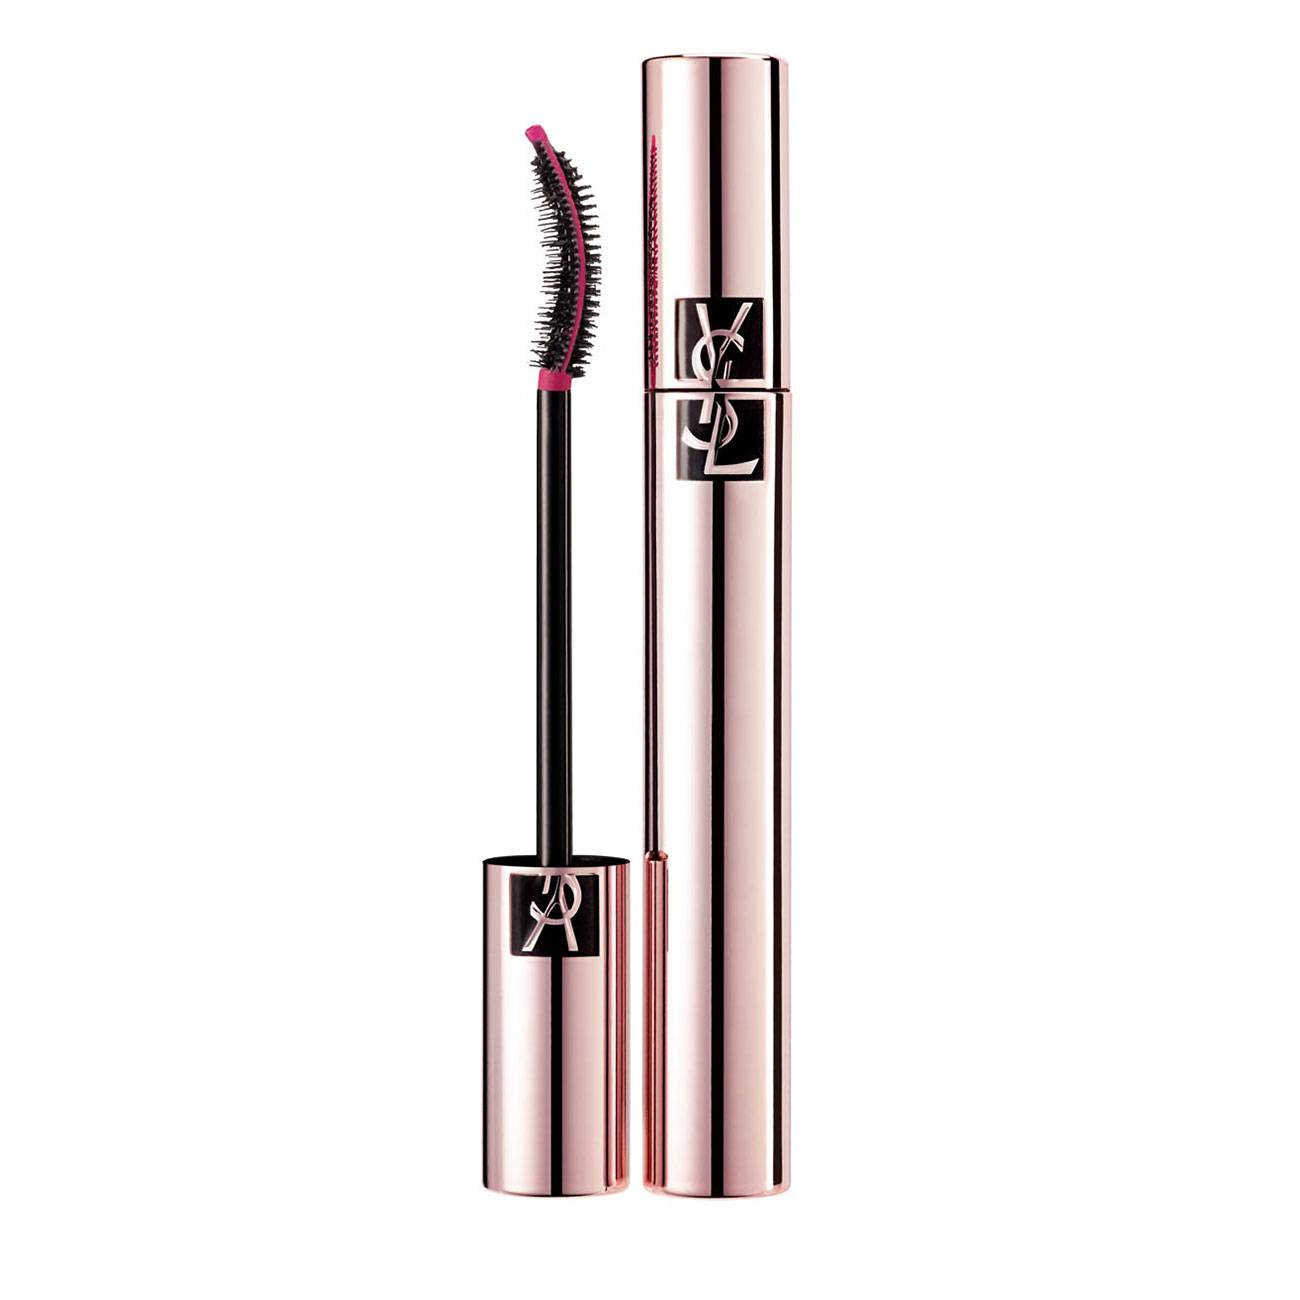 MASCARA VOLUME EFFET FAUX CILS 01 6.5ml imagine produs